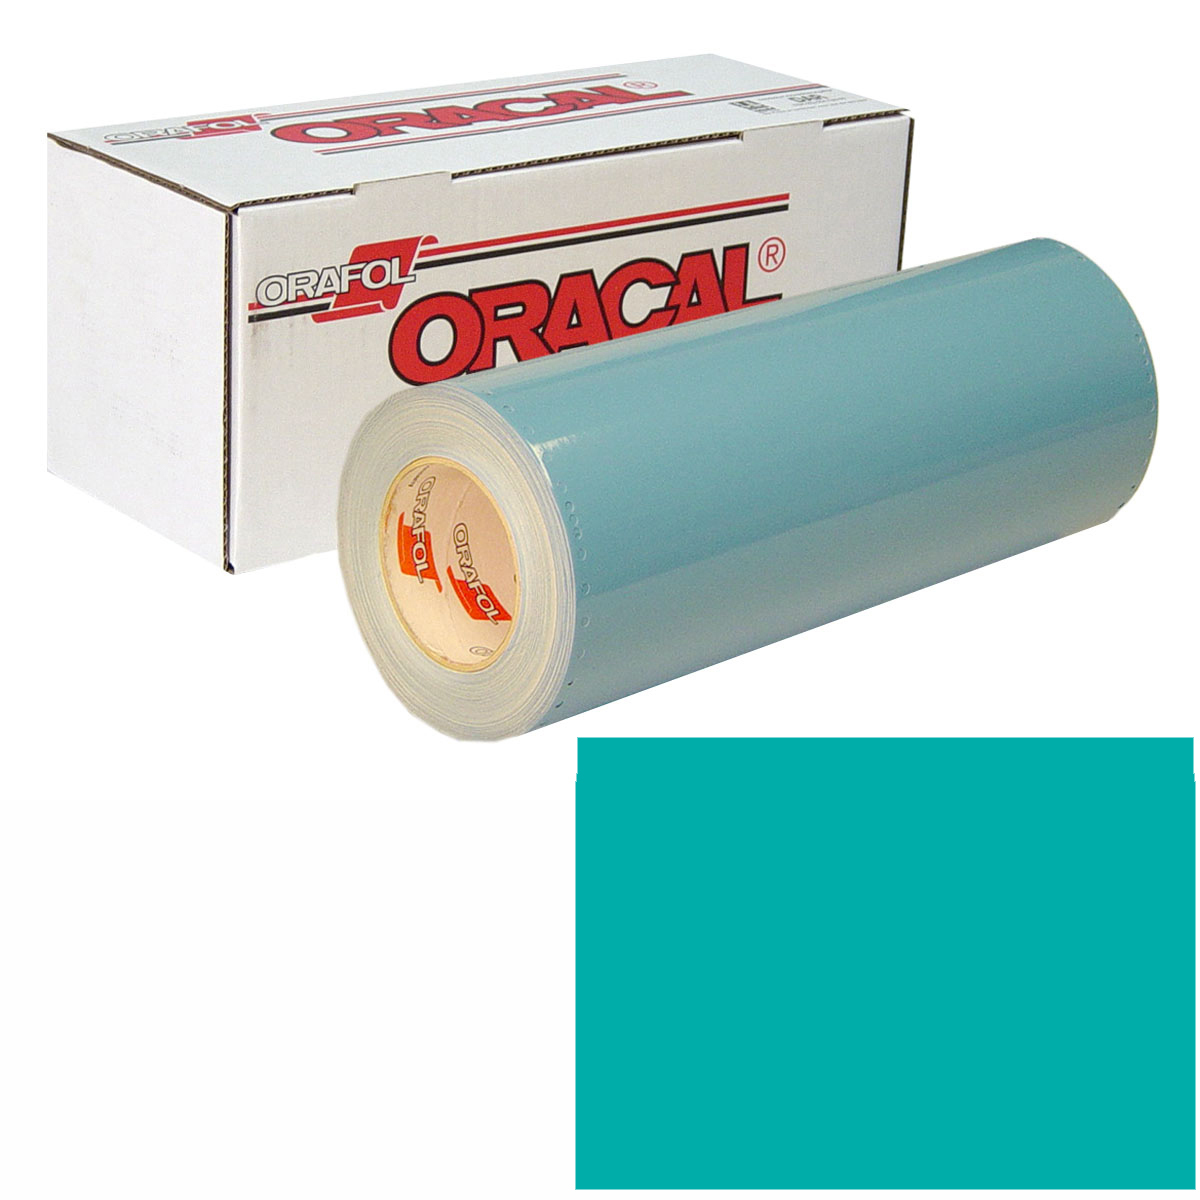 ORACAL 751 Unp 24in X 50yd 054 Turquoise